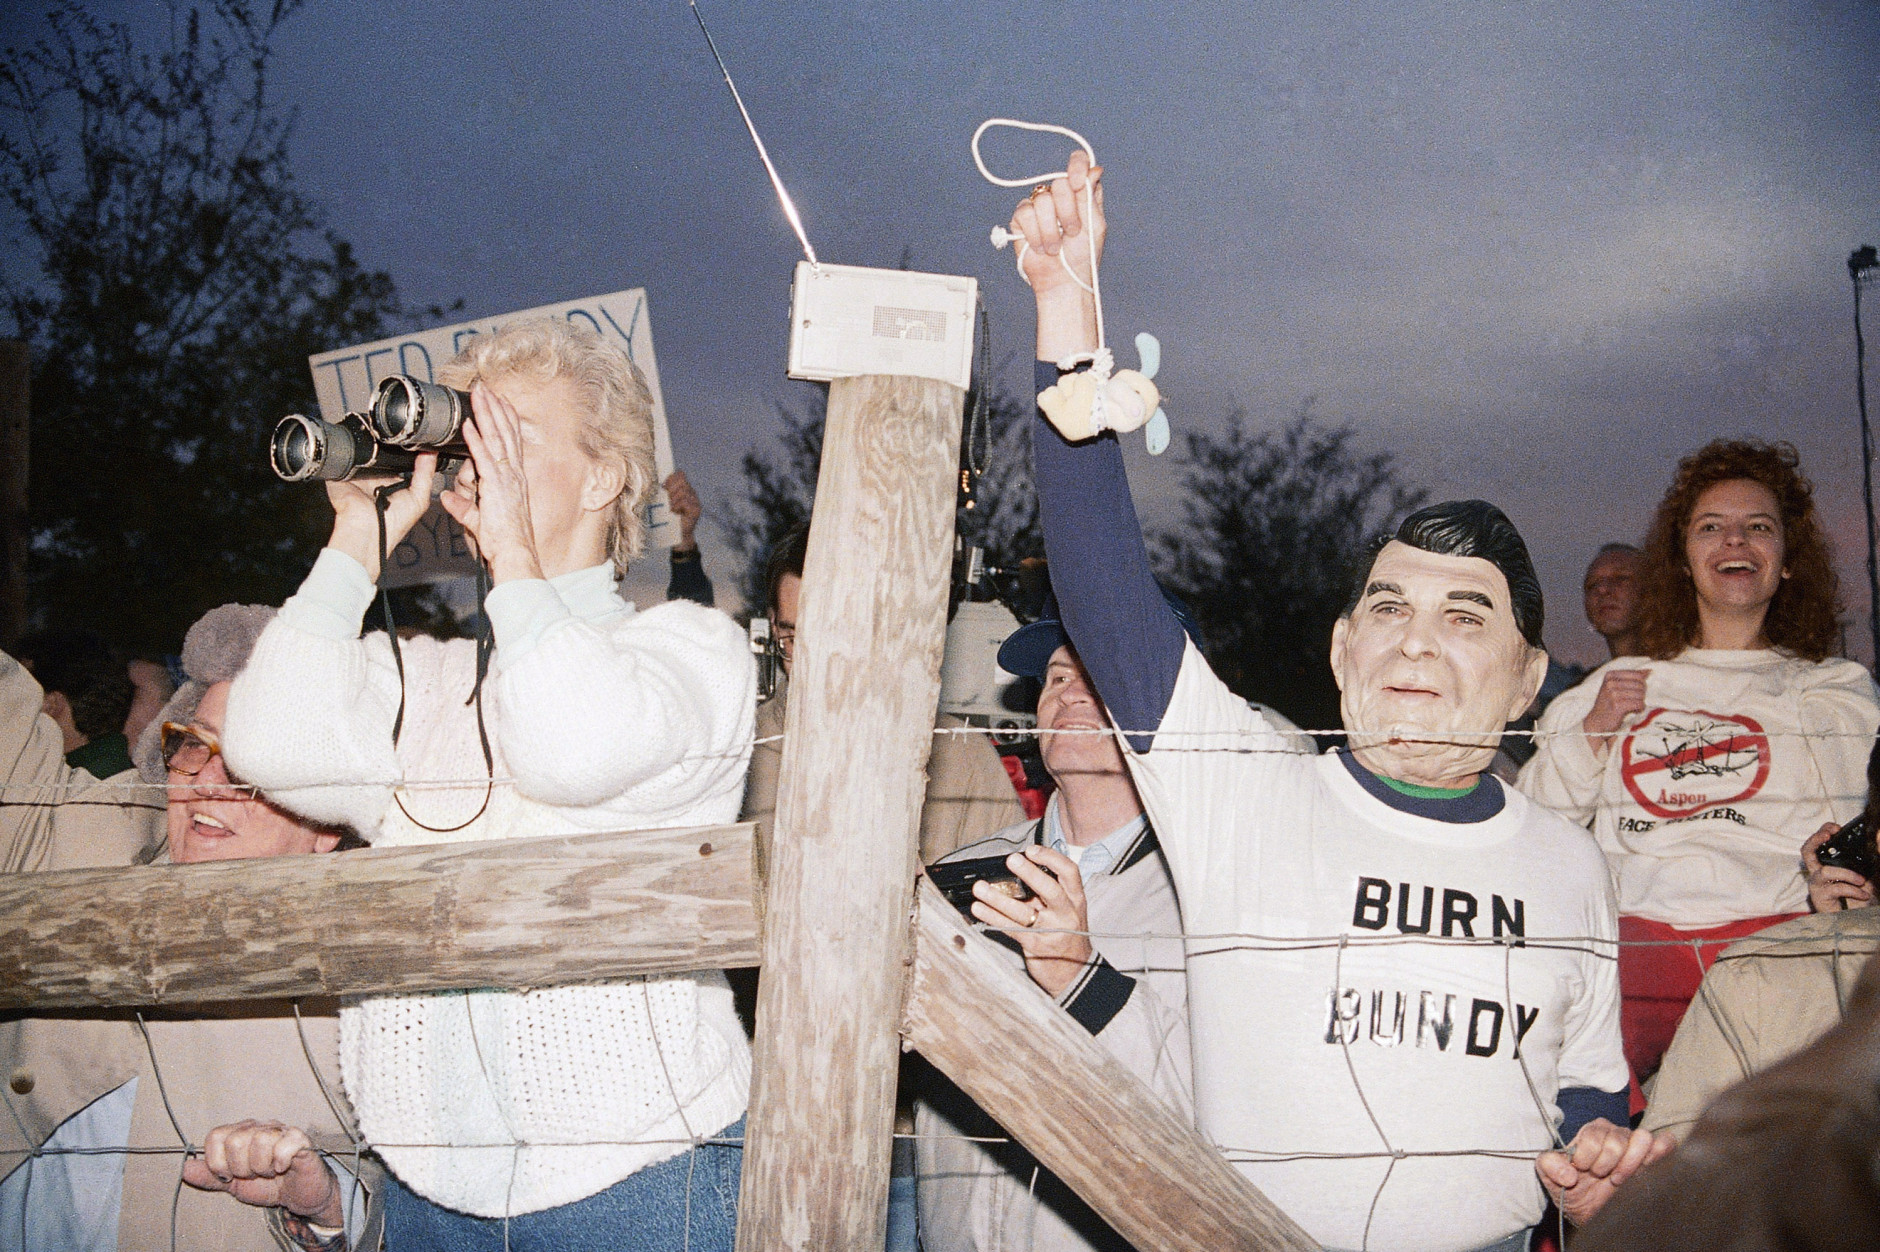 A toy bunny is hung in effigy by Jerry Jackson of Atlanta Ga., wearing a Ronald Reagan mask, and the pro-death penalty crowd rejoices after the Theodore Bundy execution, Jan. 25, 1989 at sunrise in Starke, Fla. (AP Photo/Mark Foley)